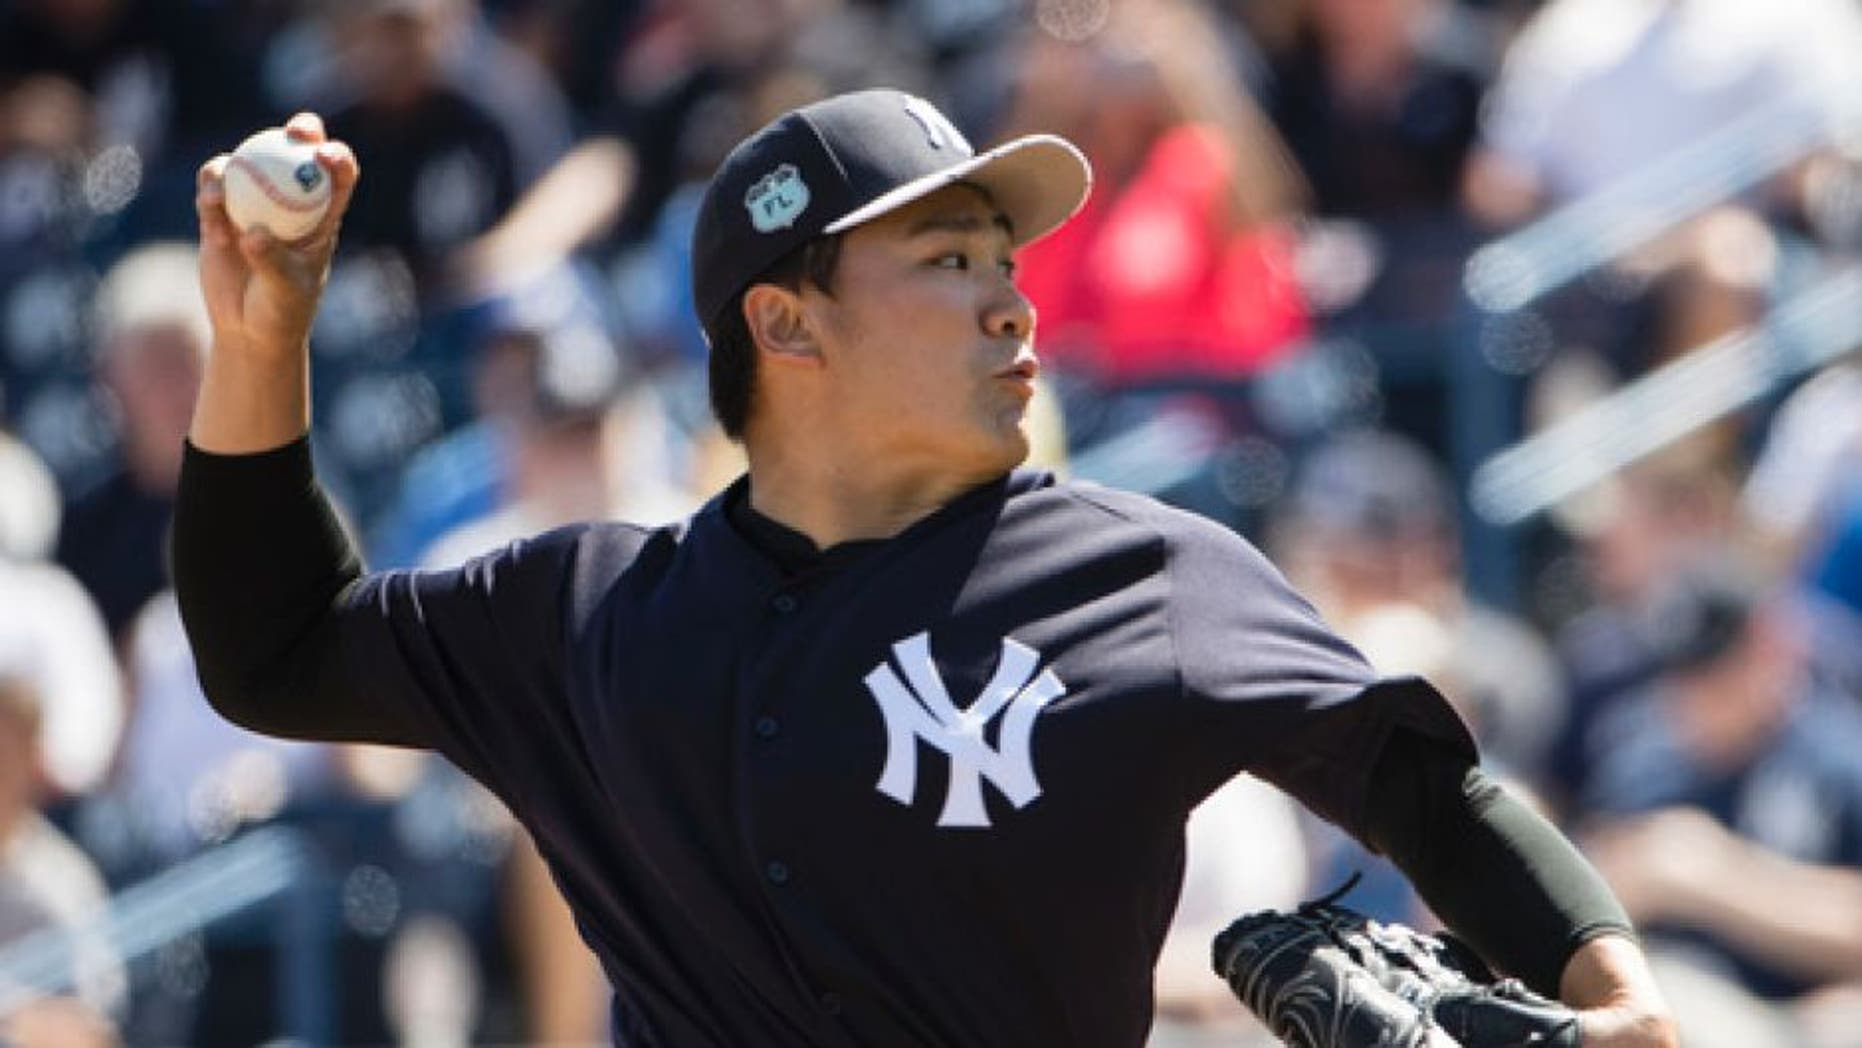 New York Yankees starting pitcher Masahiro Tanaka pitches during the first inning of a spring training baseball game against the Detroit Tigers Tuesday, Feb. 28, 2017, in Tampa, Fla. (AP Photo/Matt Rourke)